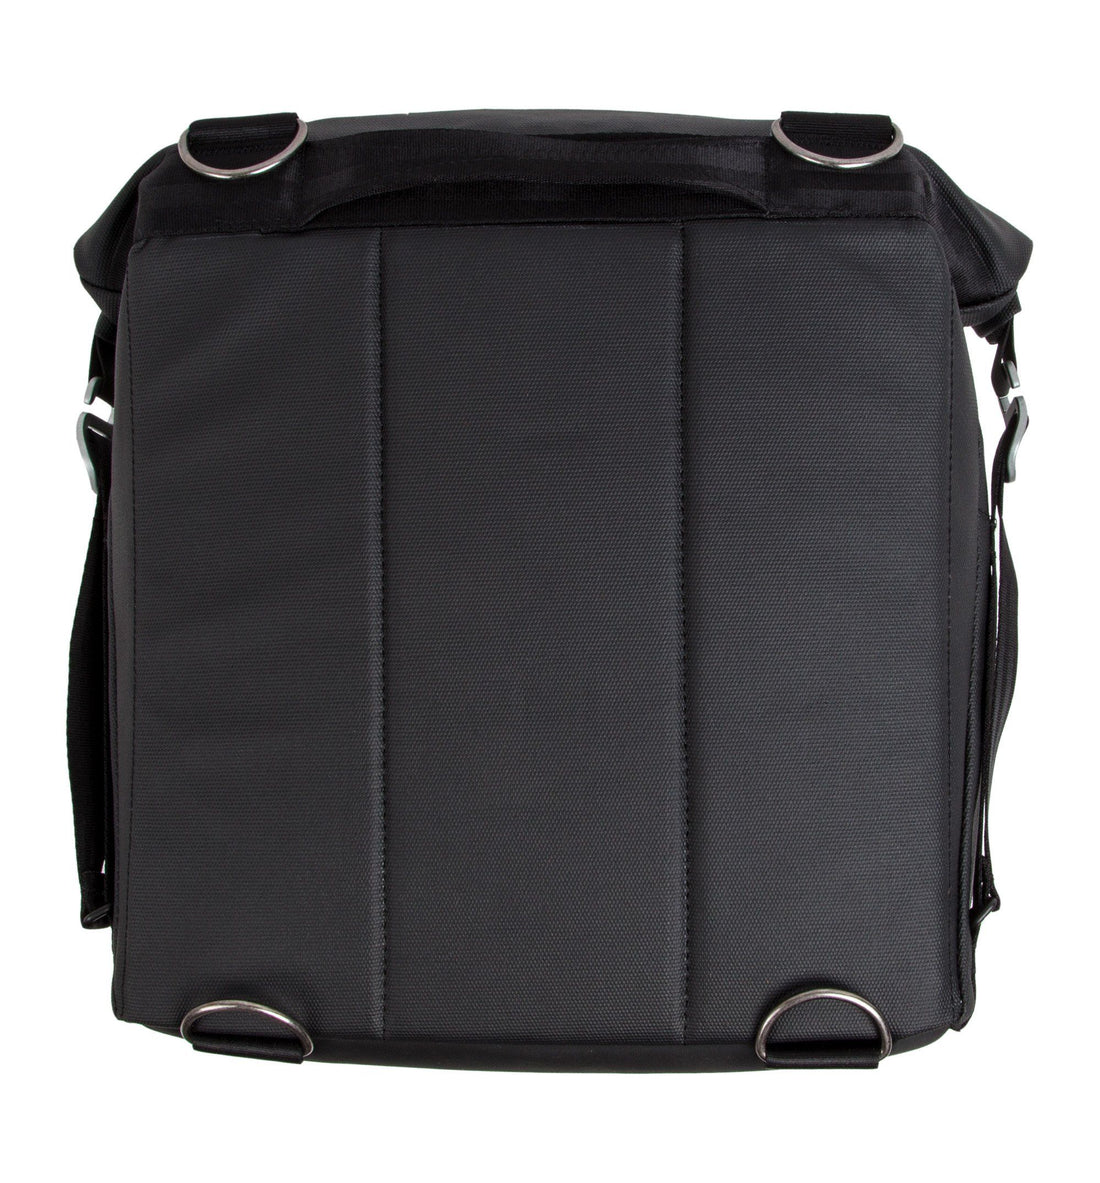 Iron & Resin Moto Pannier - Black - Bags/Luggage - Iron and Resin